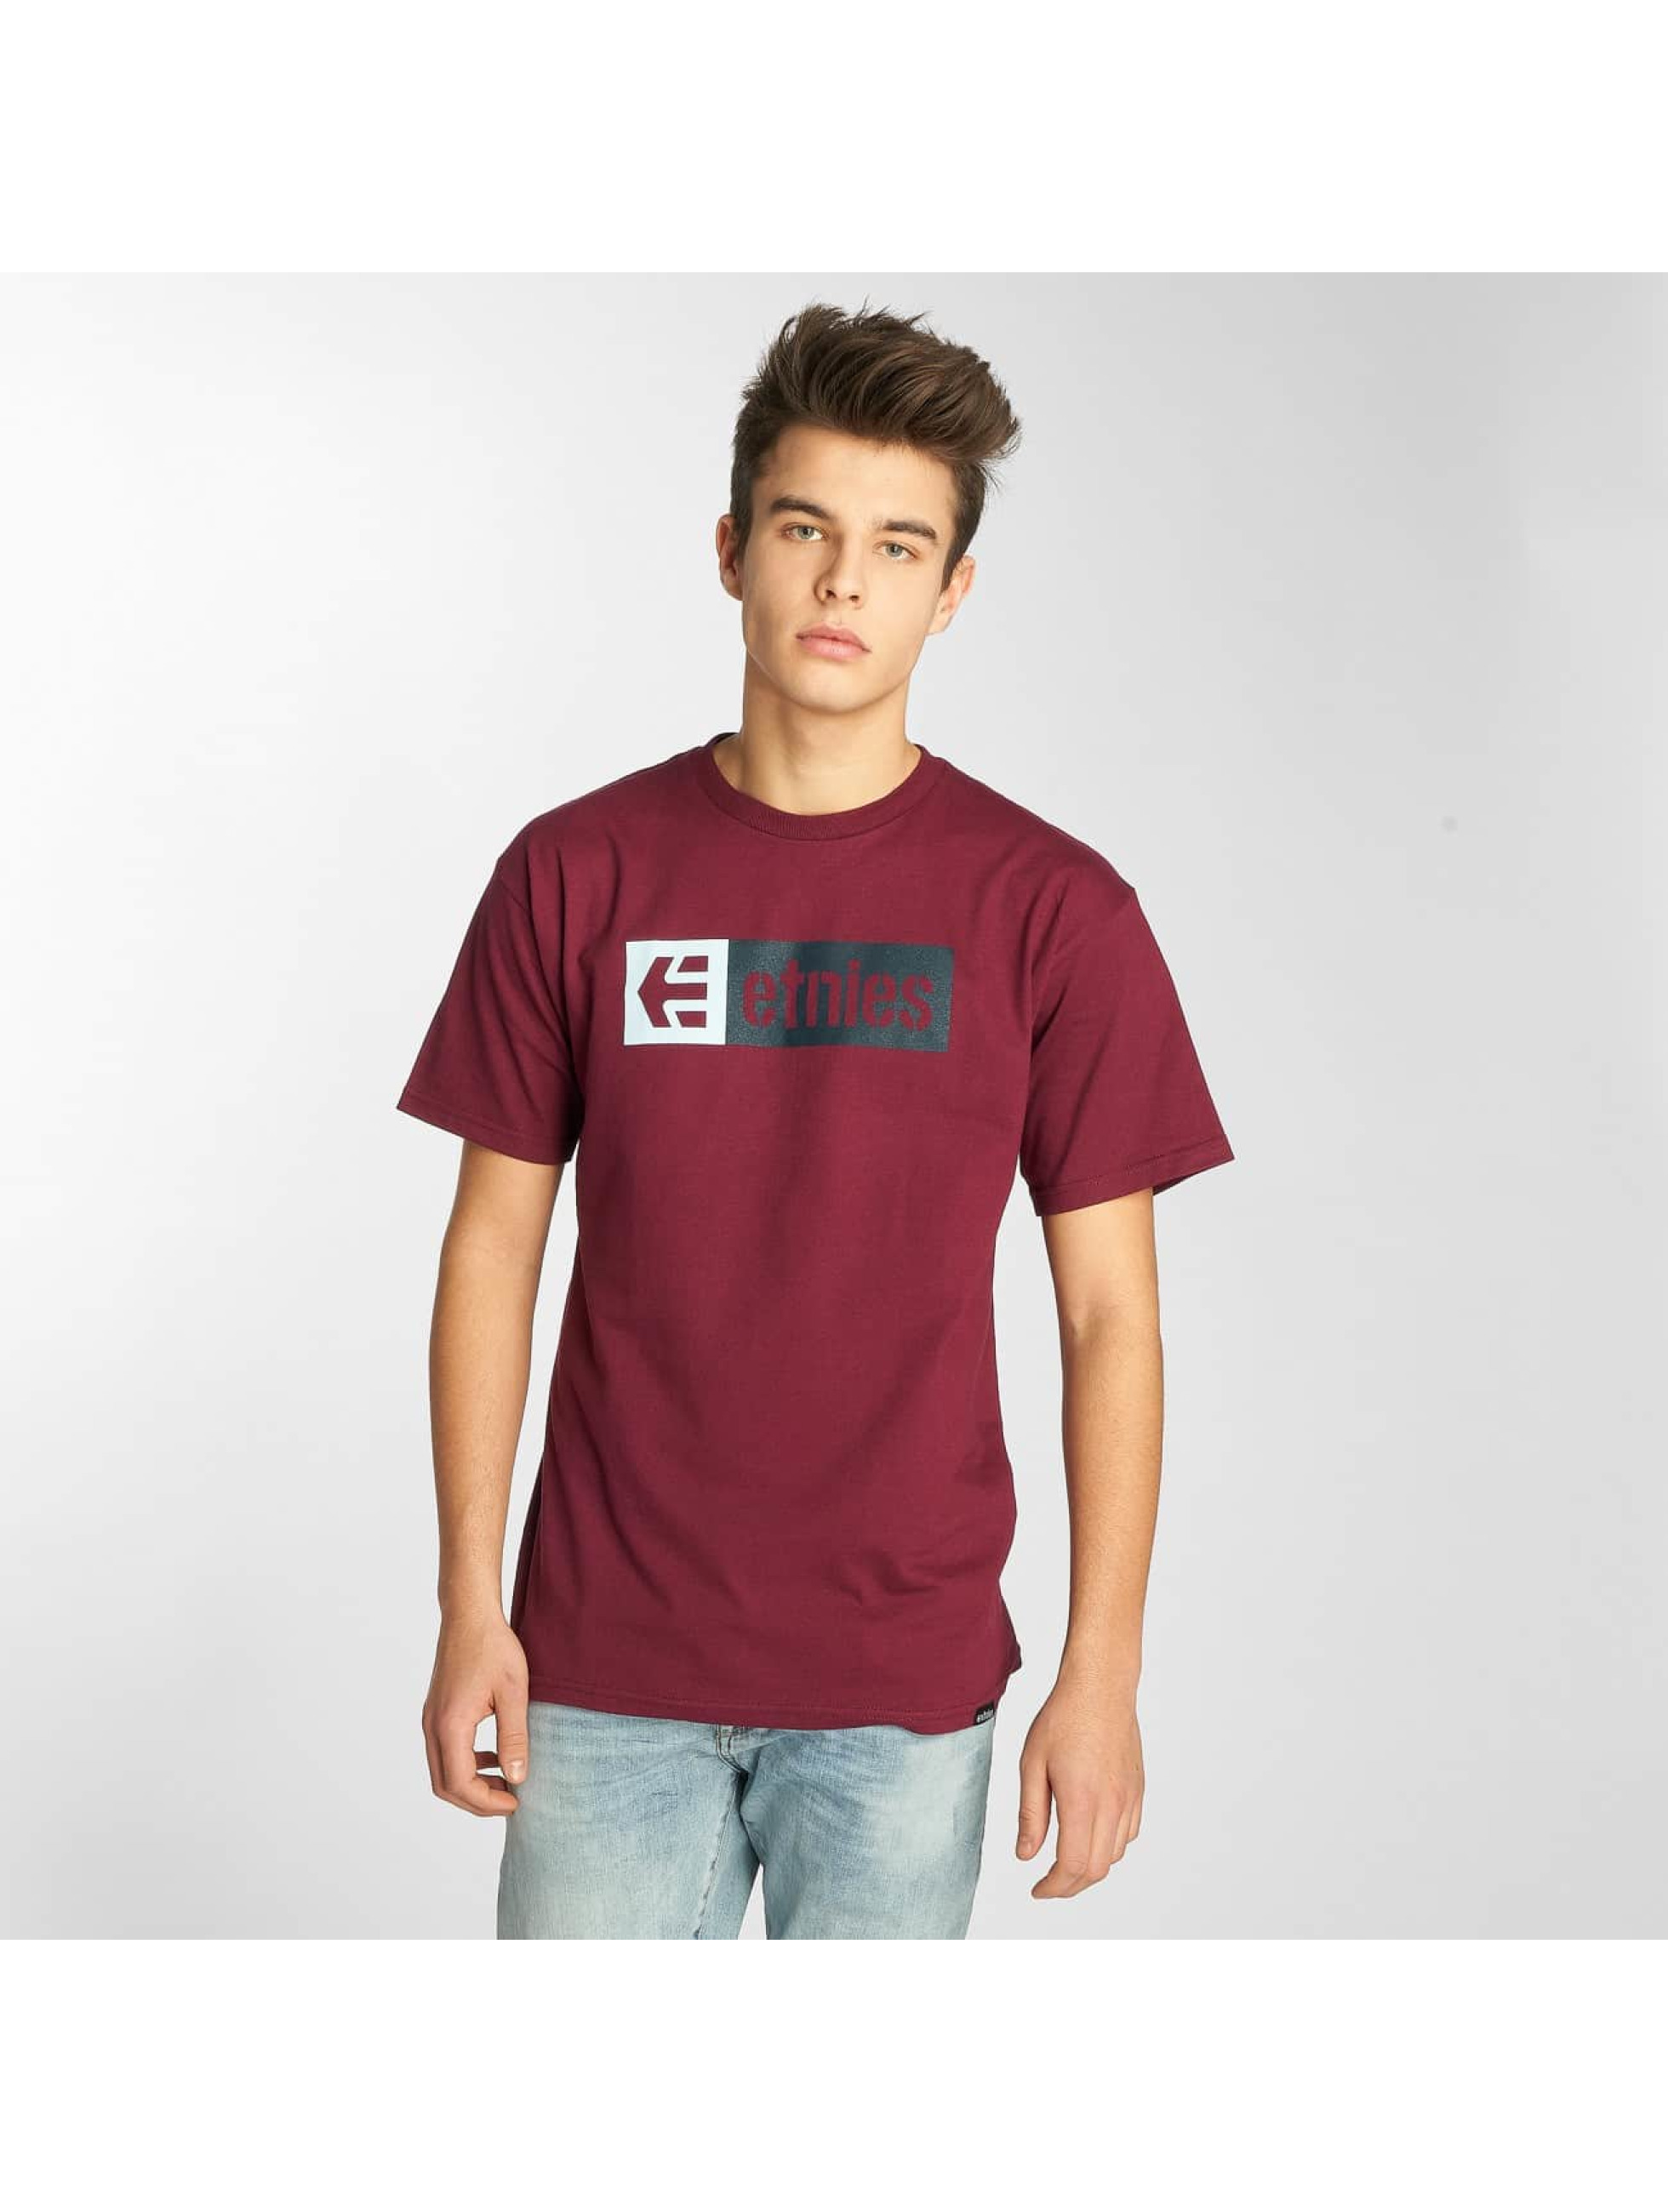 Etnies T-Shirt New Box rouge